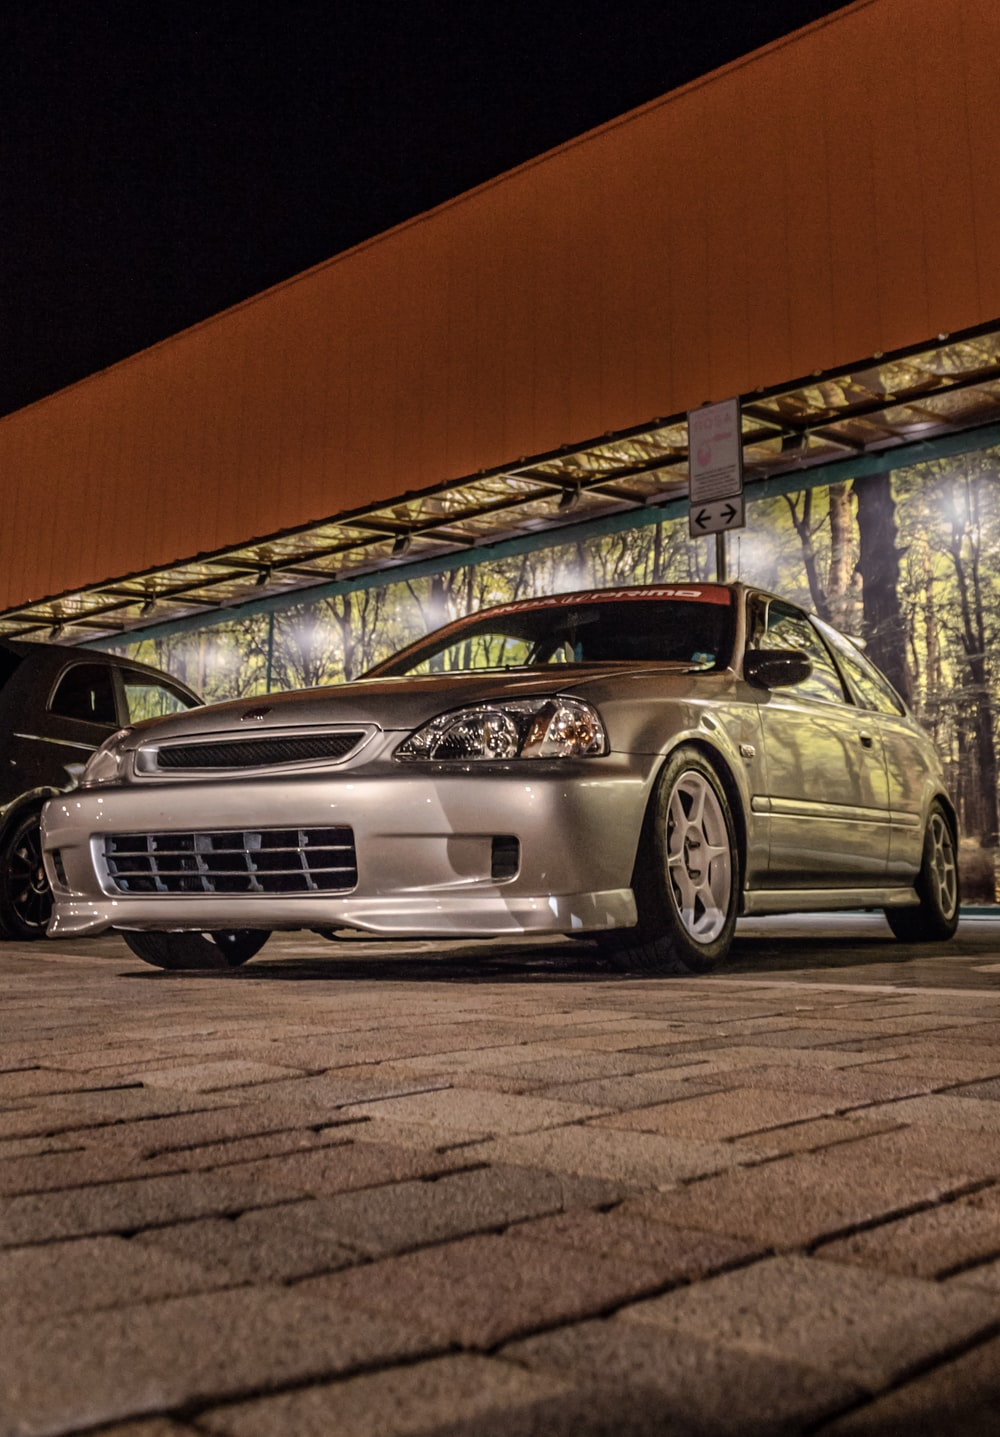 silver Nissan Skyline GT-R coupe parking